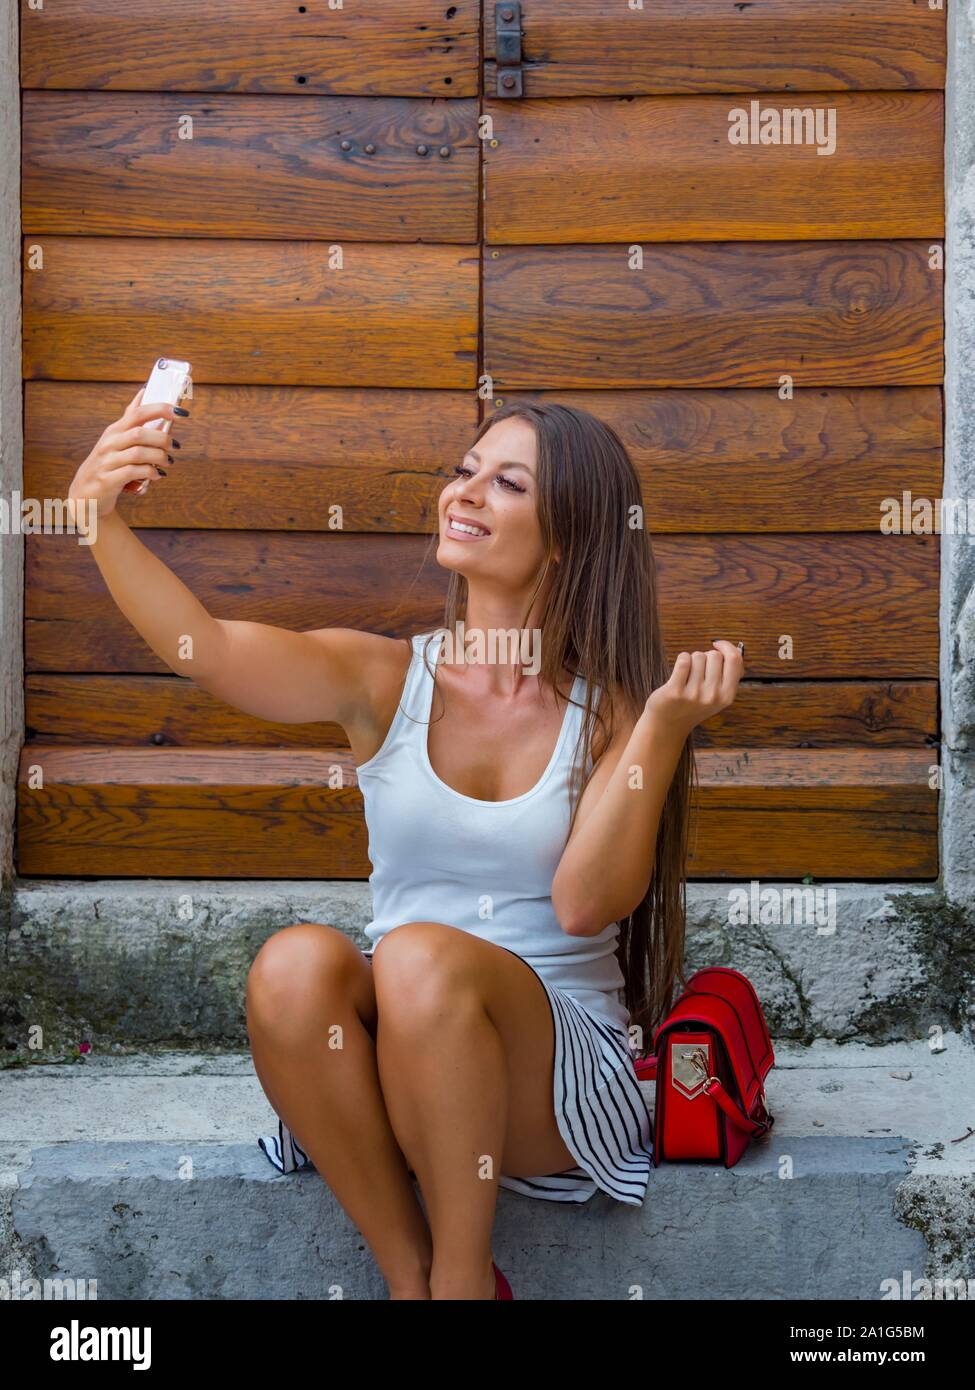 Attractive young woman looking up into camera cellphone sitting on entrance porch doorstep before wooden doors door color vertical Stock Photo